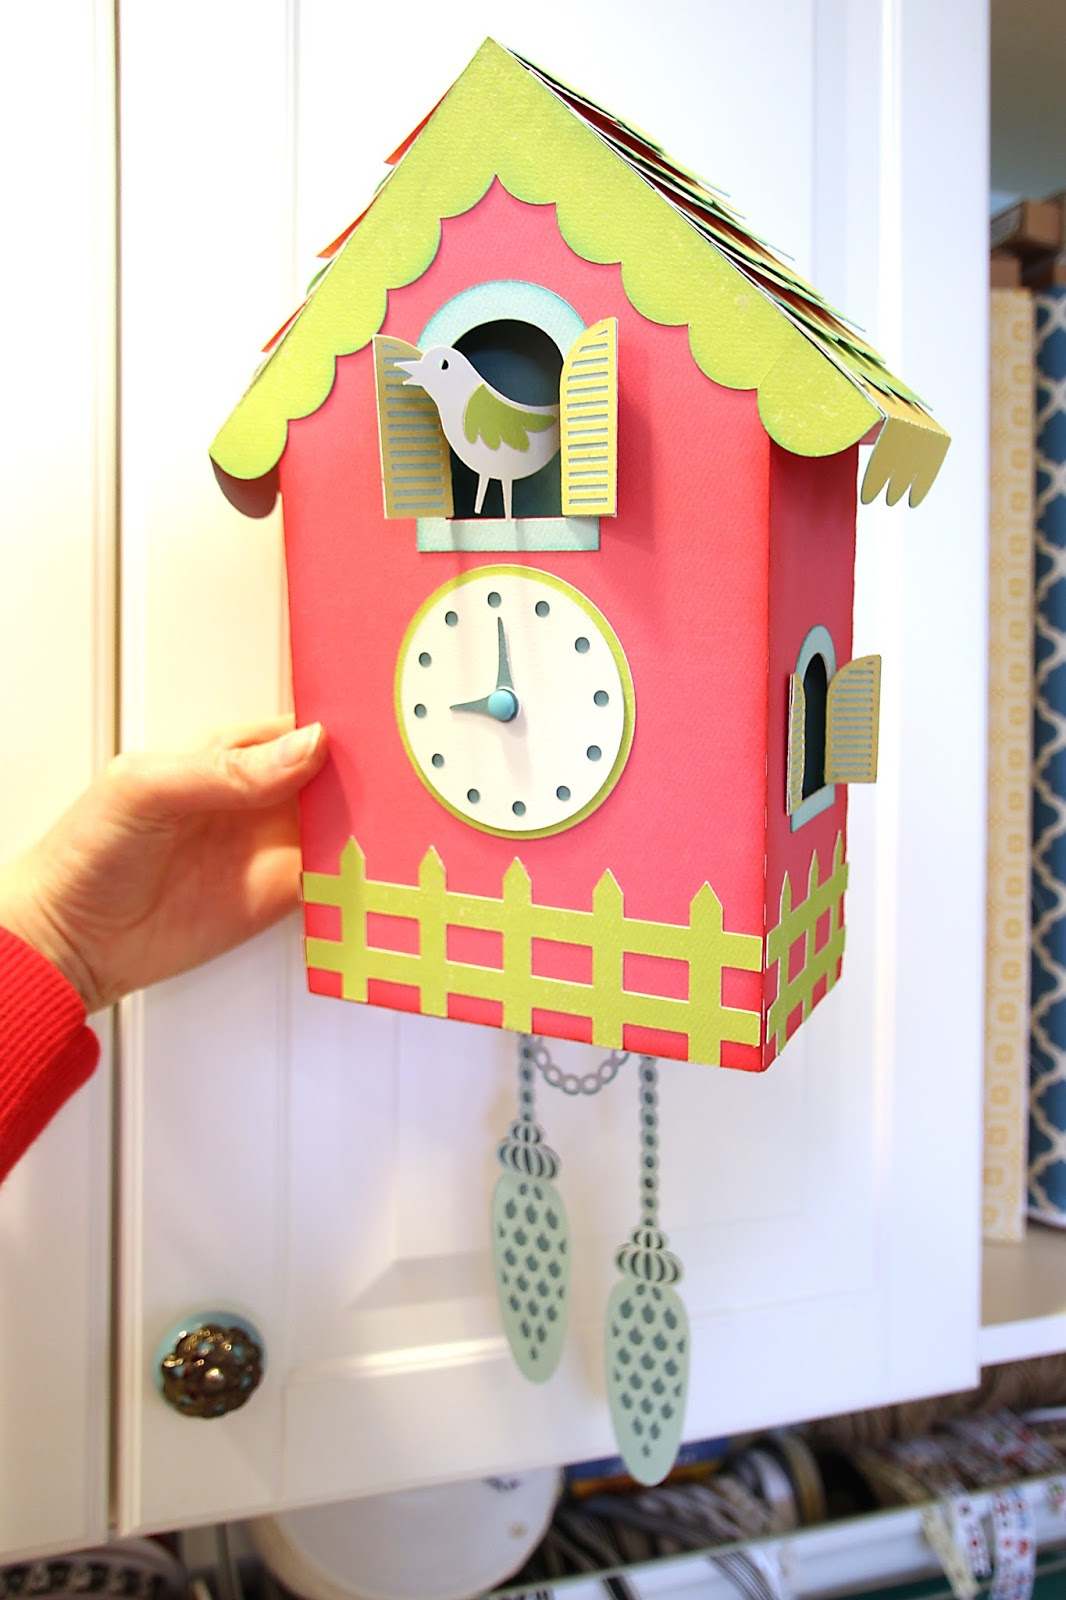 Samantha walker 39 s imaginary world part 2 cuckoo clock How to make a cuckoo clock